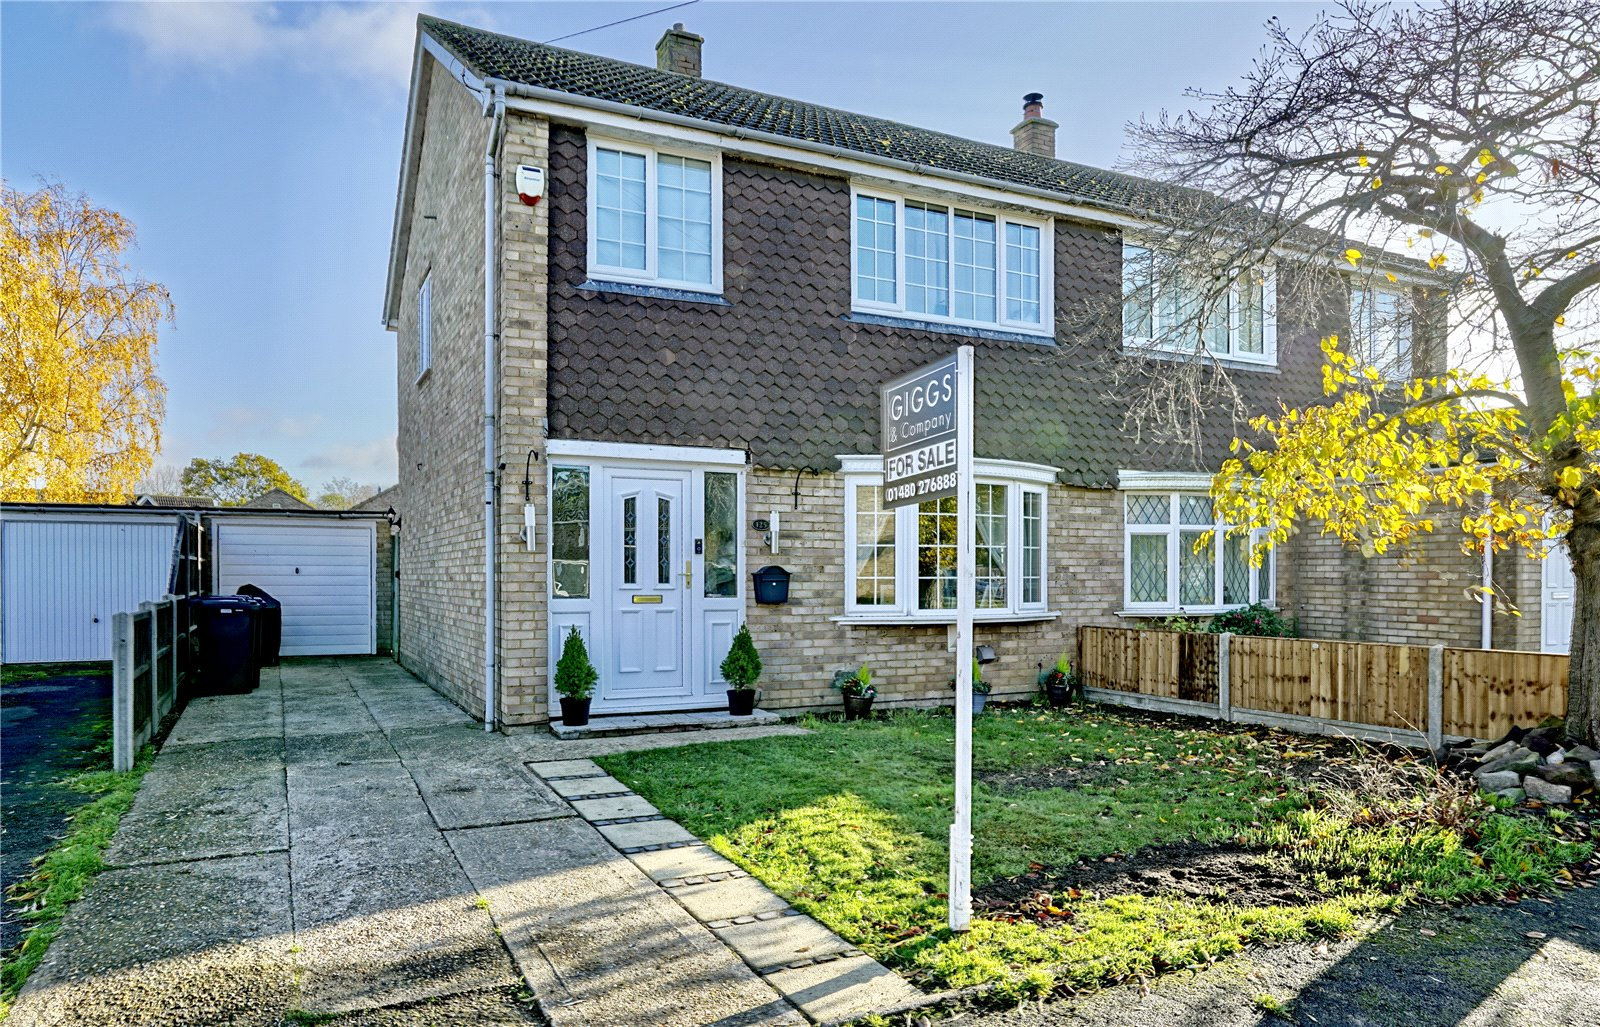 3 bed house for sale in Gordon Road, Little Paxton - Property Image 1